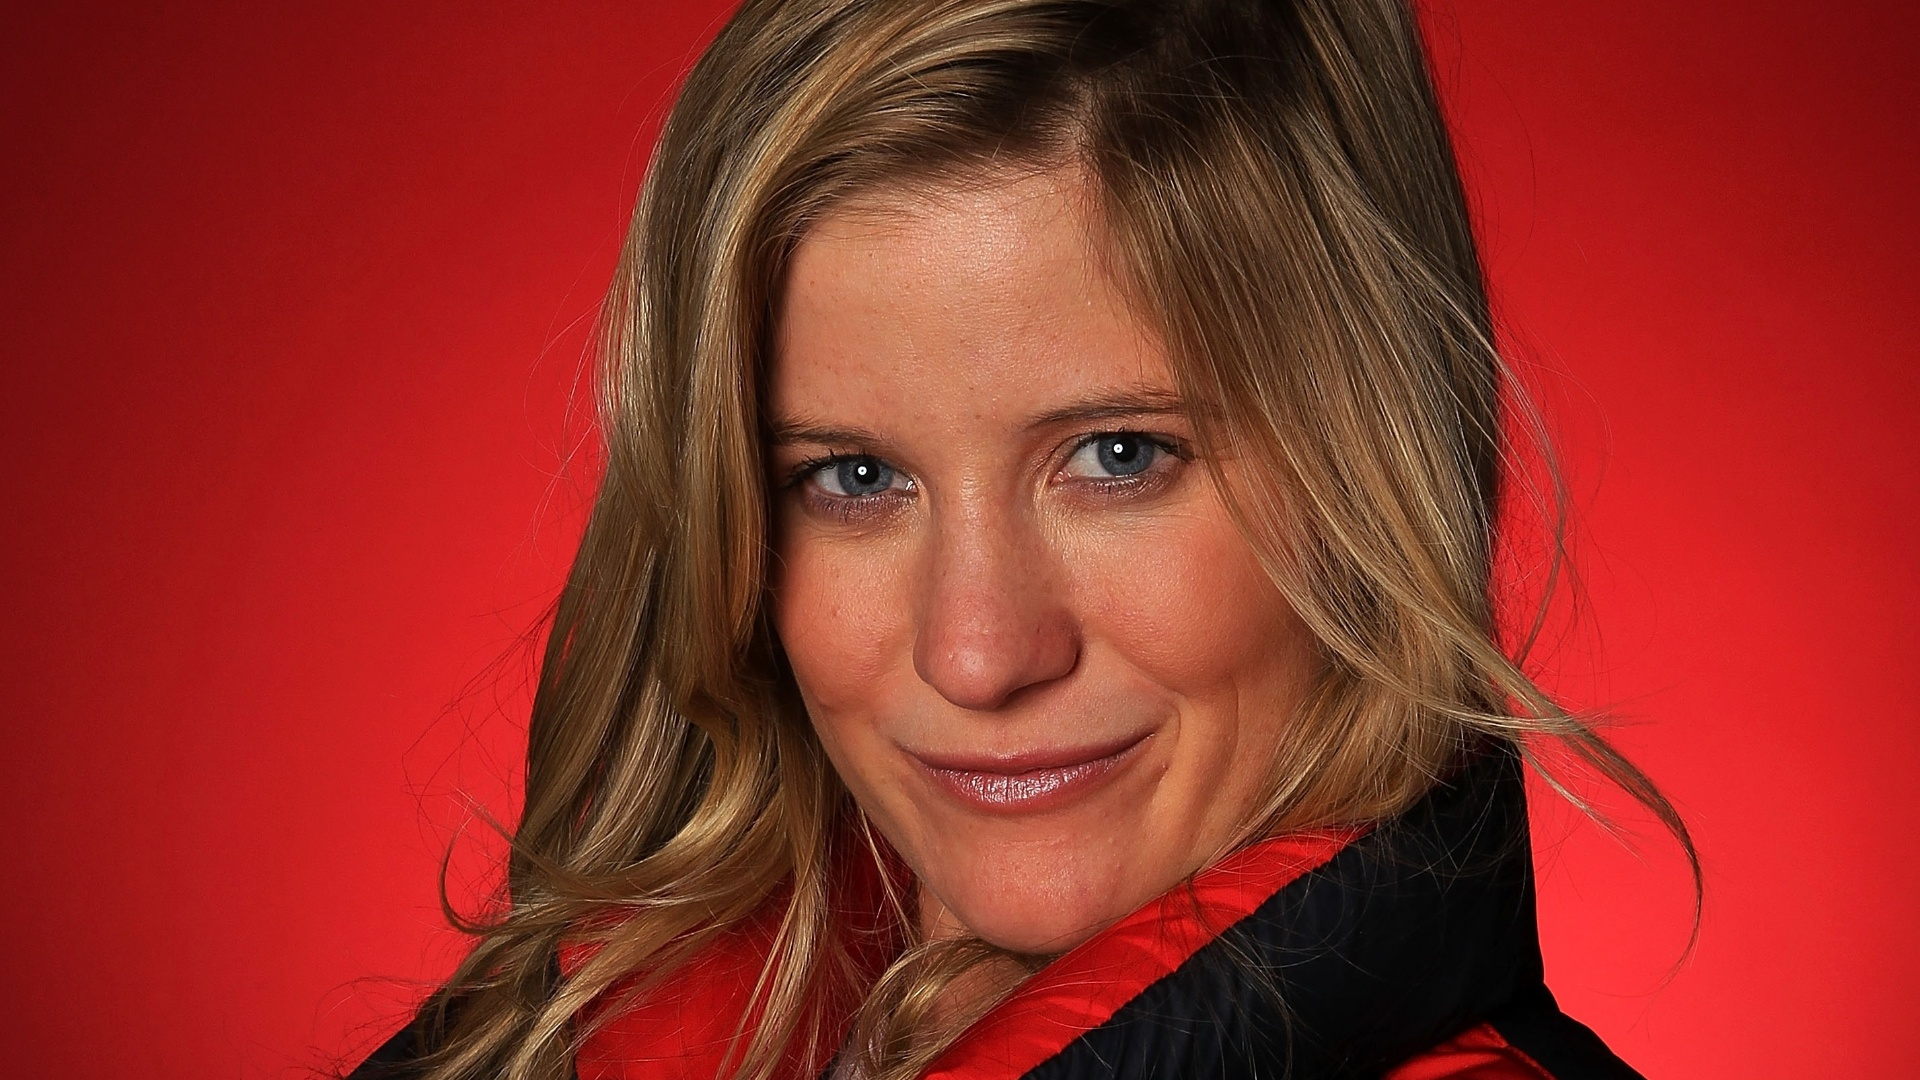 Hannah Teter, norte-americana destaque do snowboard